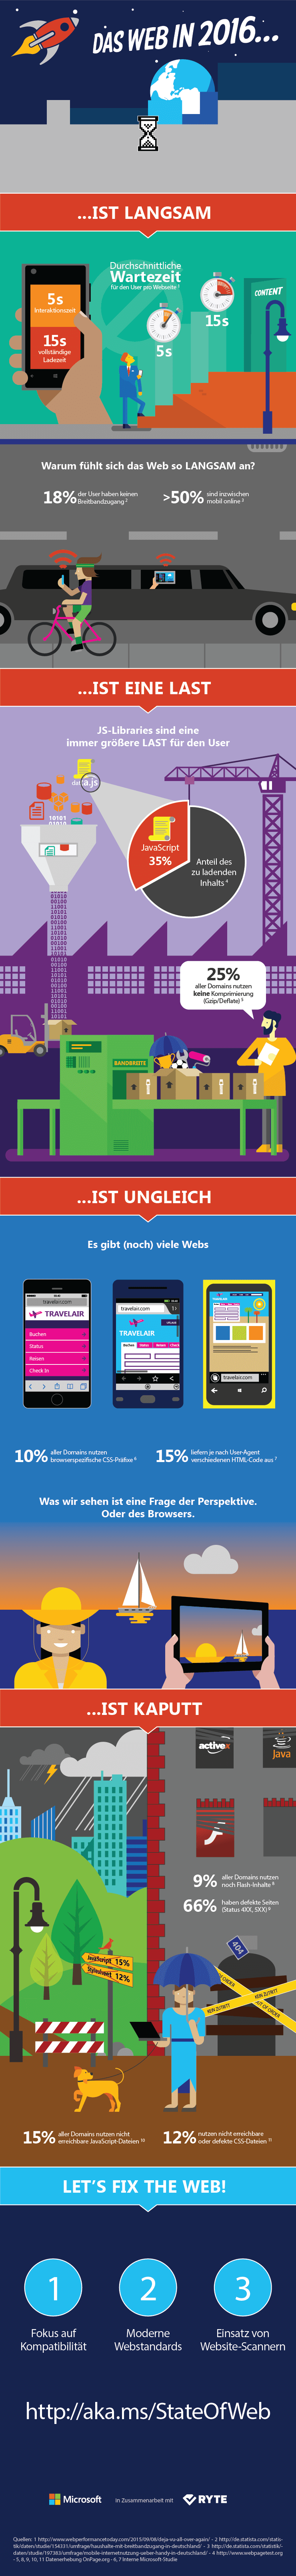 Das Web in 2016